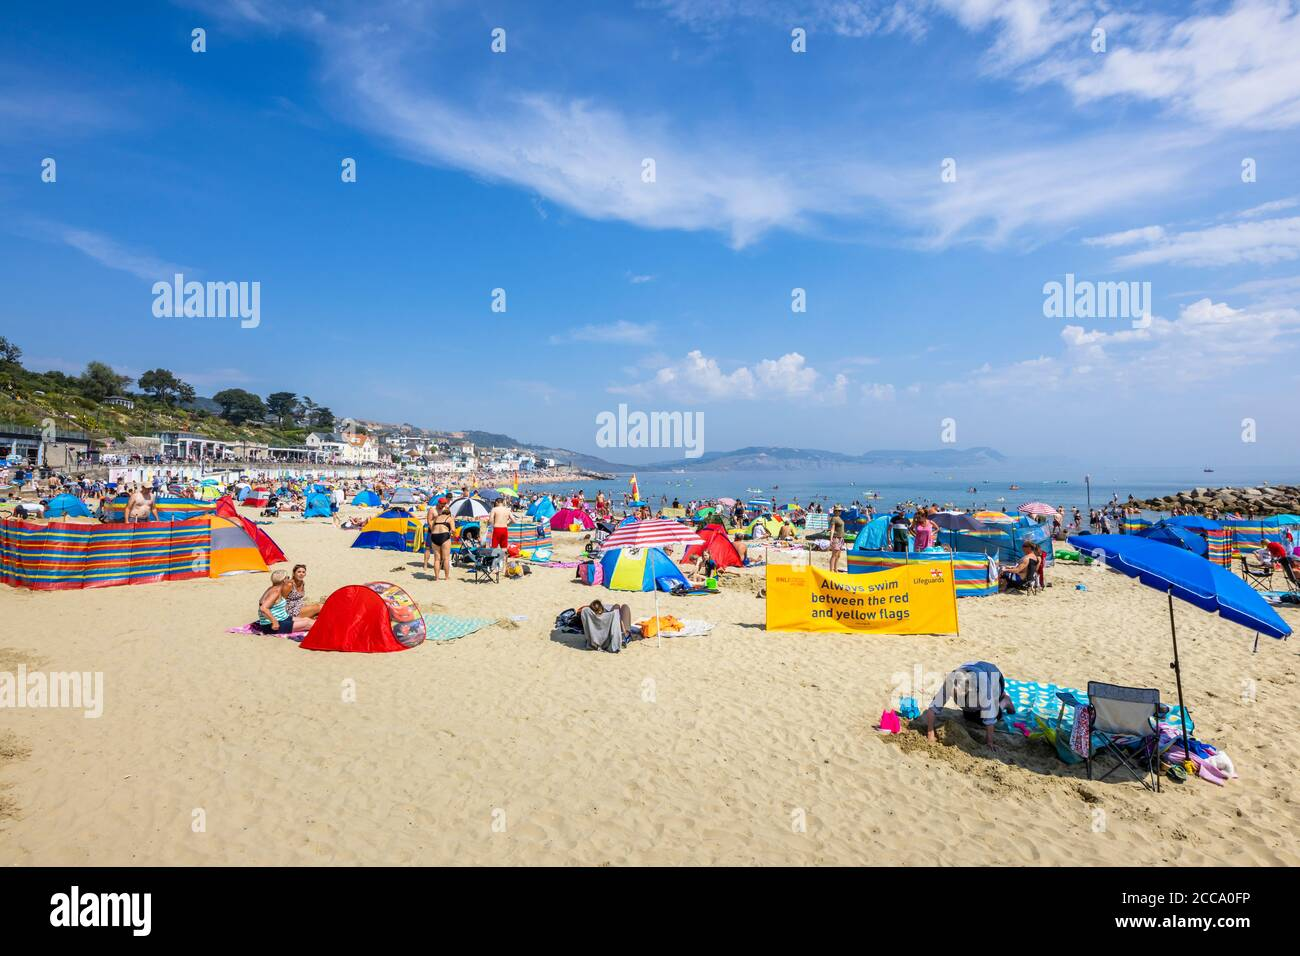 The crowded beach and seafront in high season at Lyme Regis, a popular seaside holiday resort on the Jurassic Coast in Dorset, south-west England Stock Photo